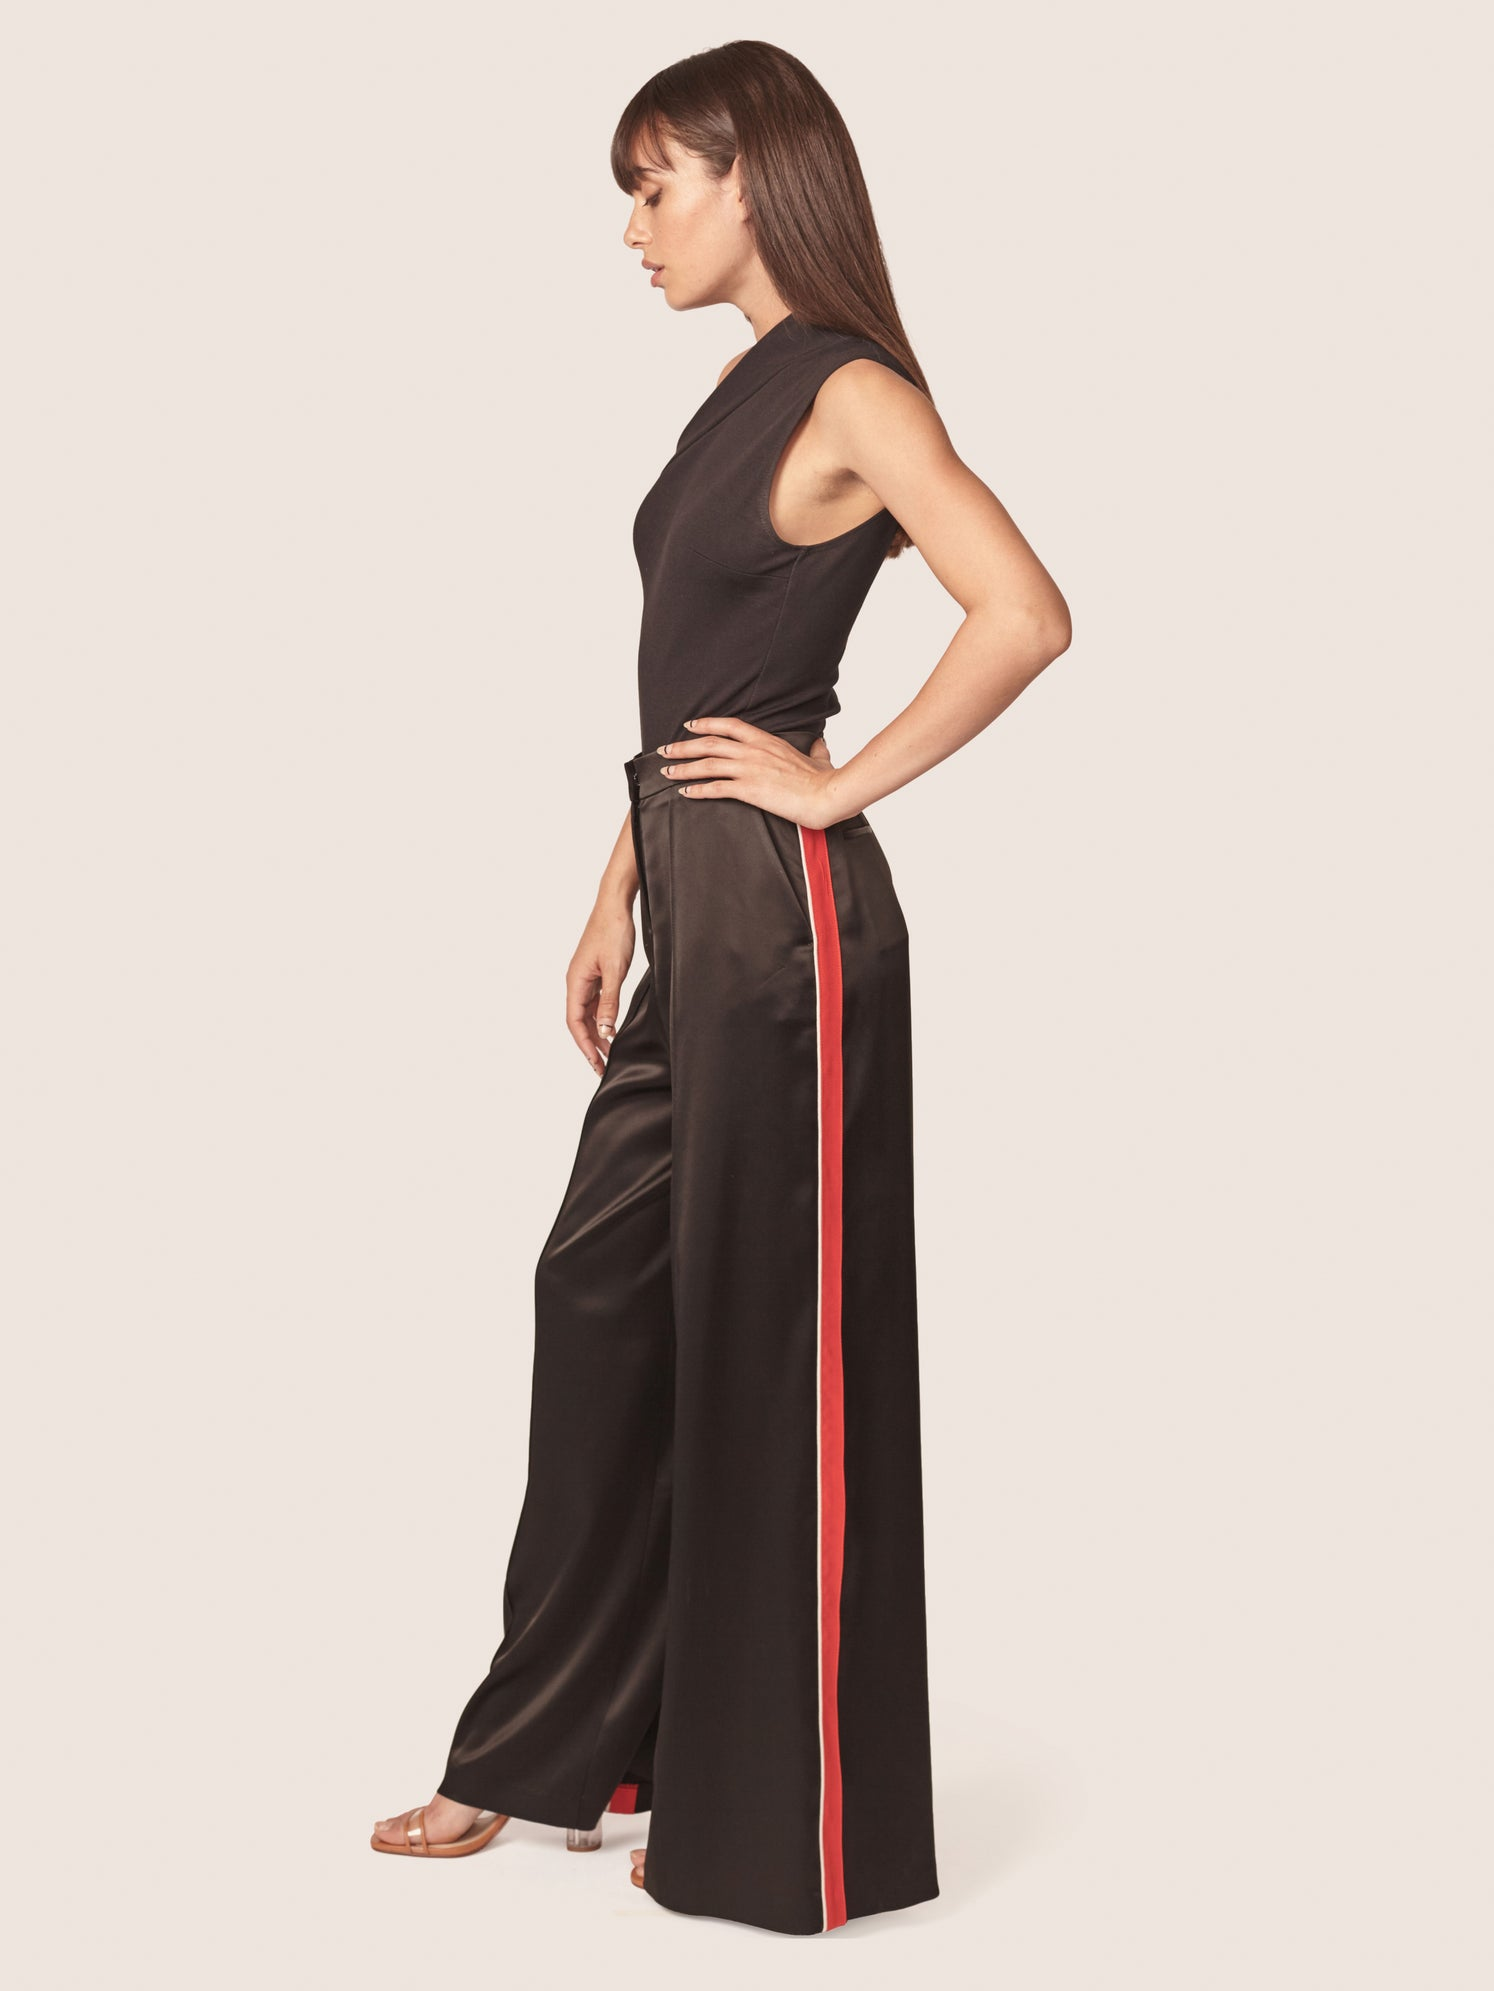 Satin wide leg pant with contrast red side panels